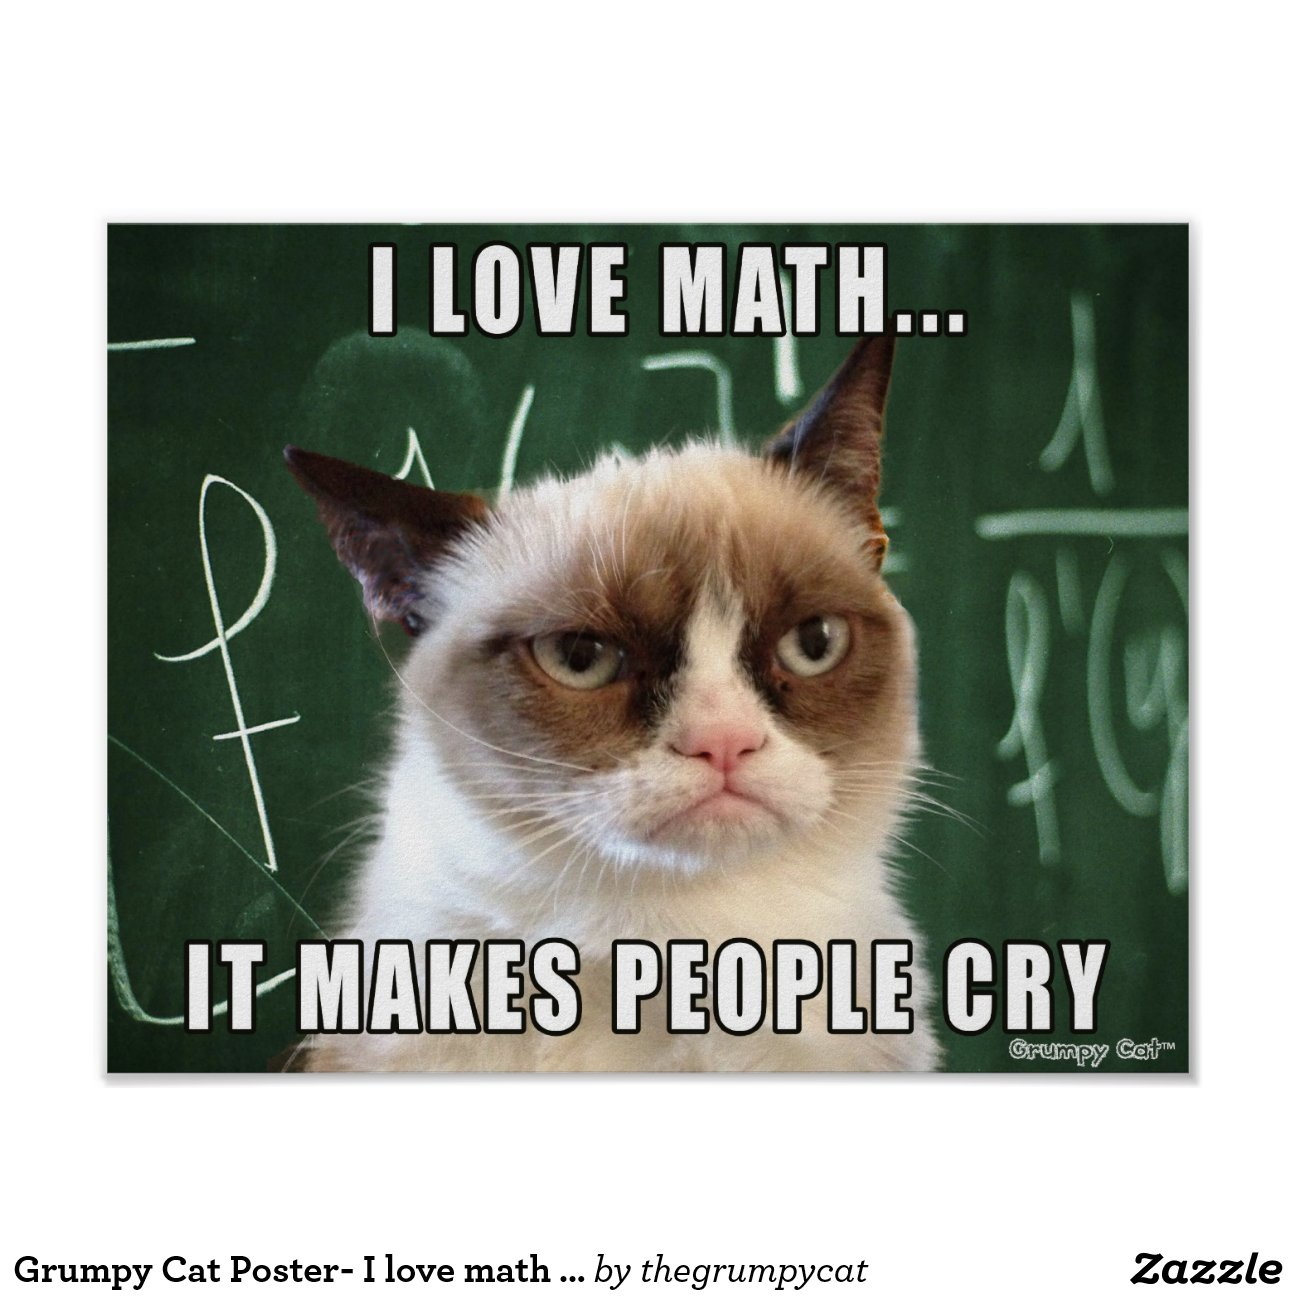 Grumpy Cat Poster- Love Math Makes People Cry Poster